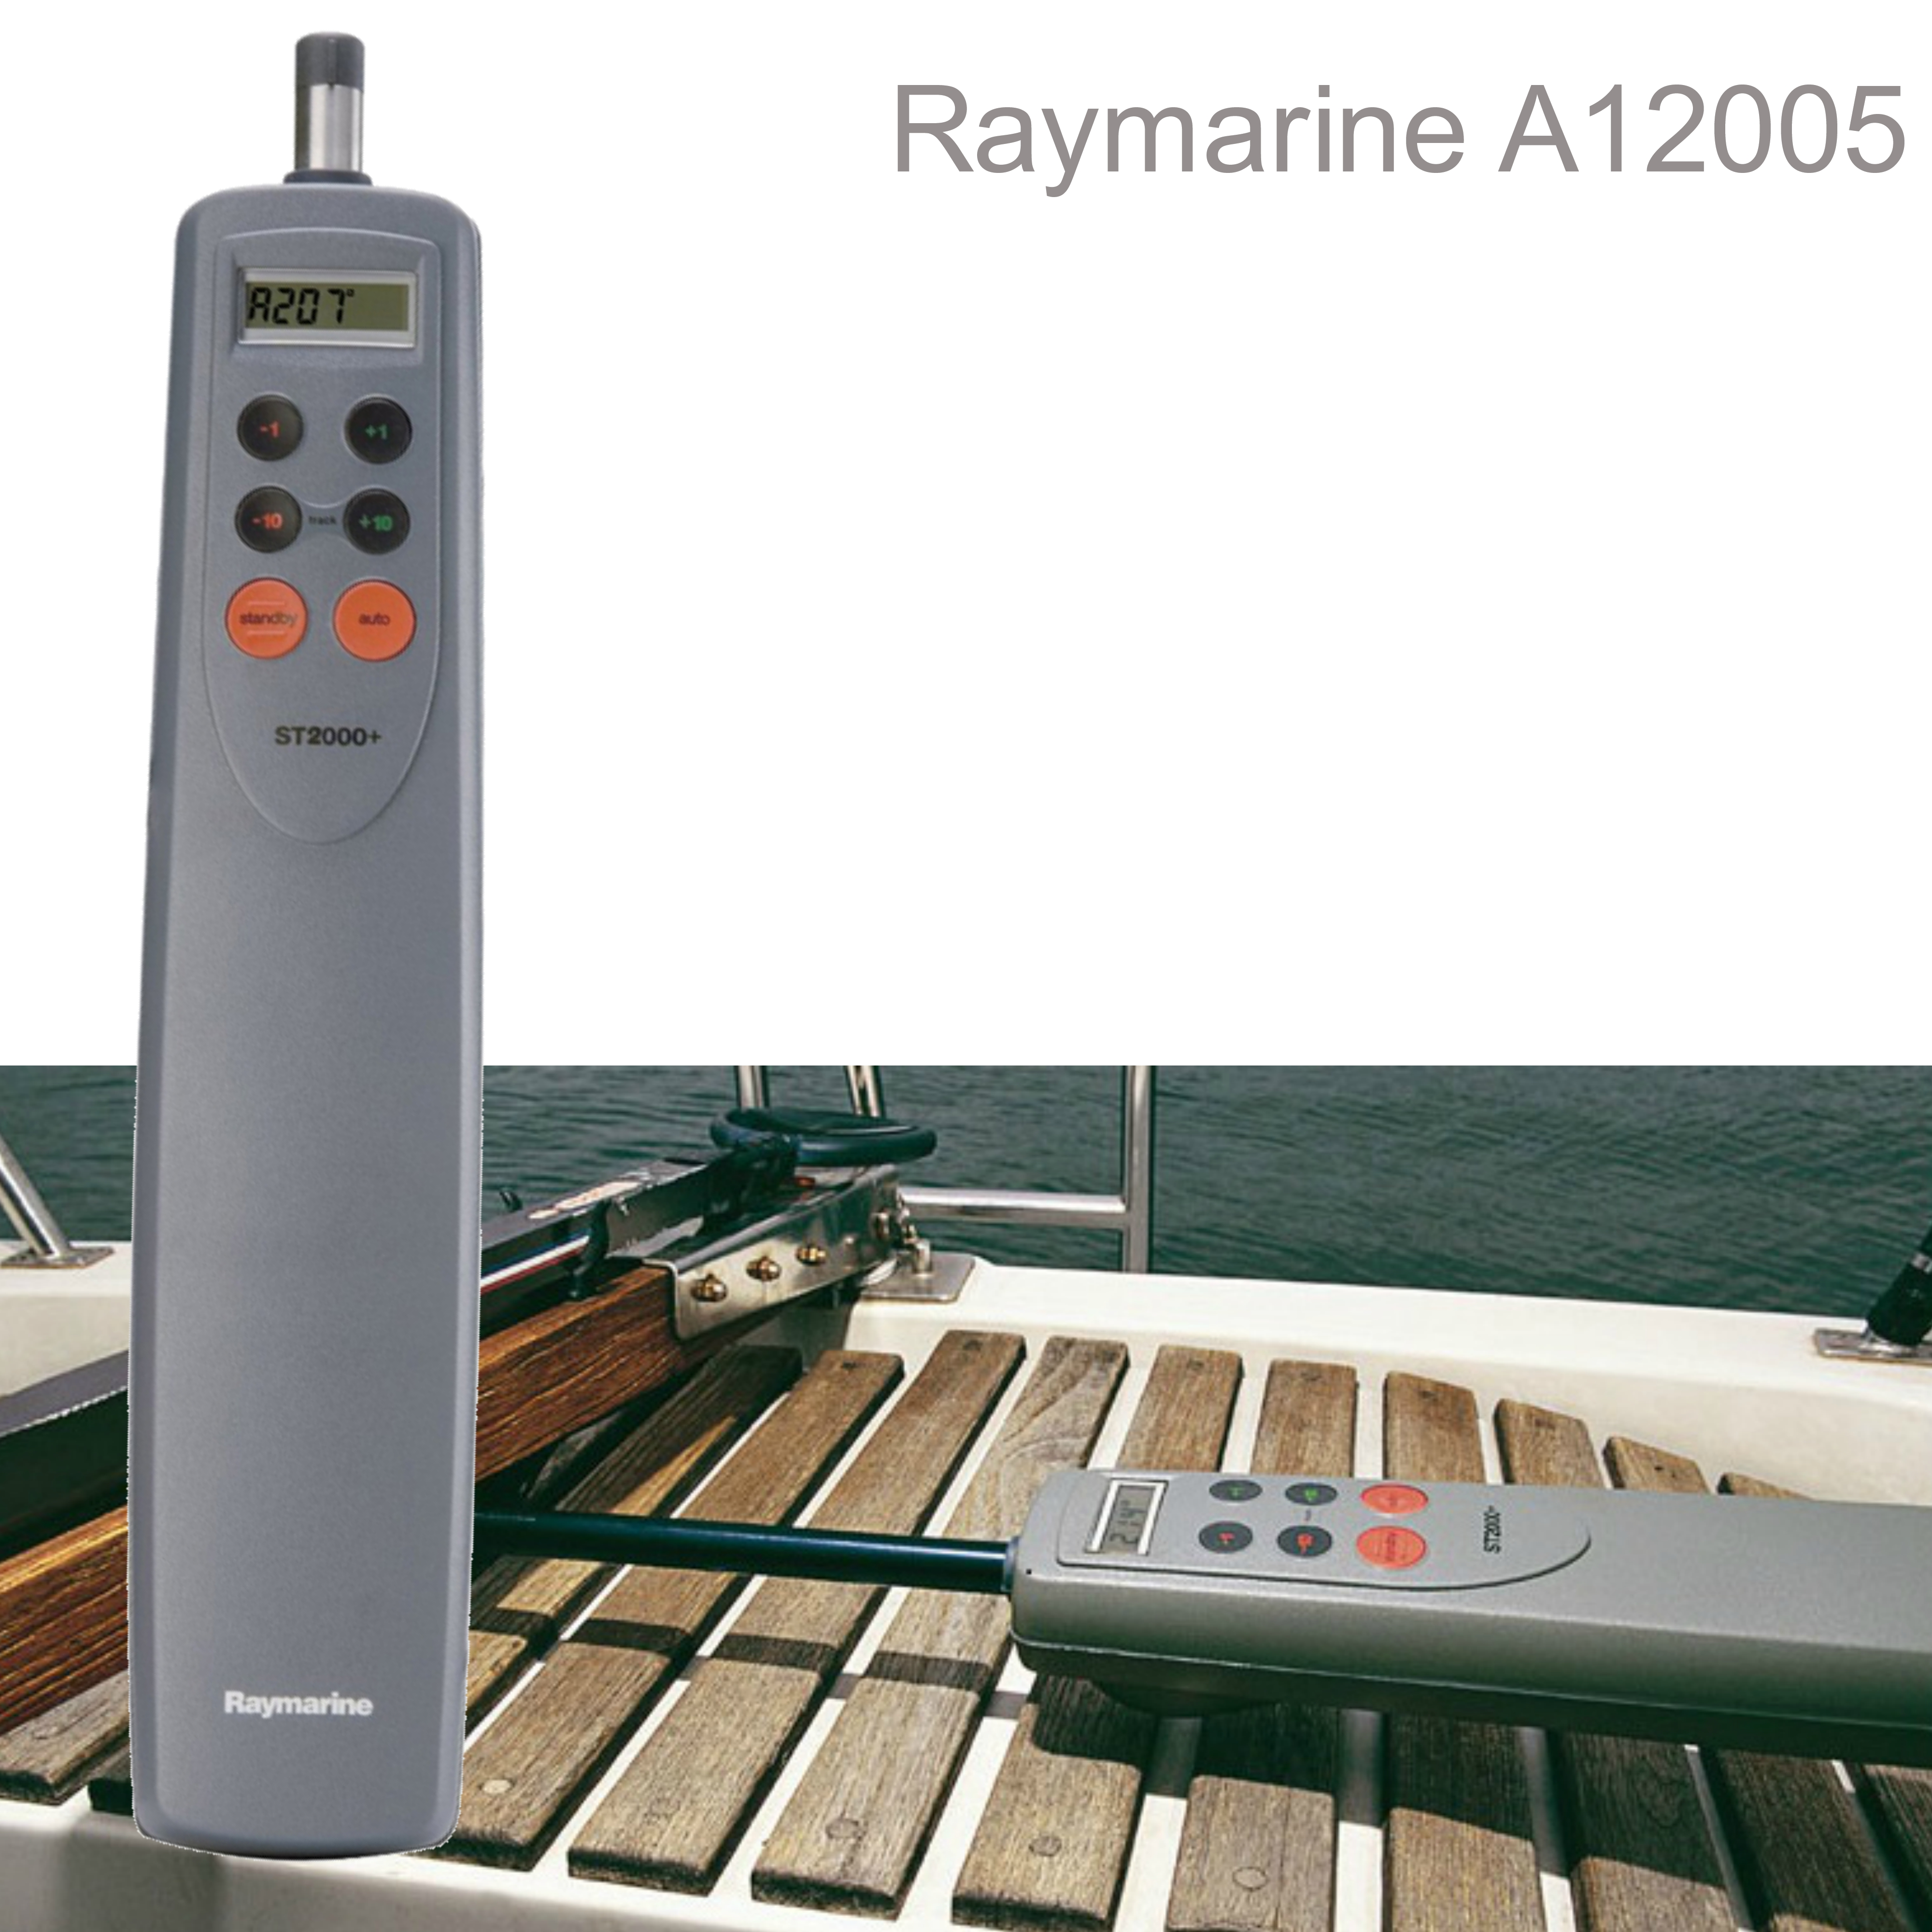 Raymarine-A12005|ST2000+ Tiller/AutoPilots|45mm LCD|For Tiller Yachts & Boats